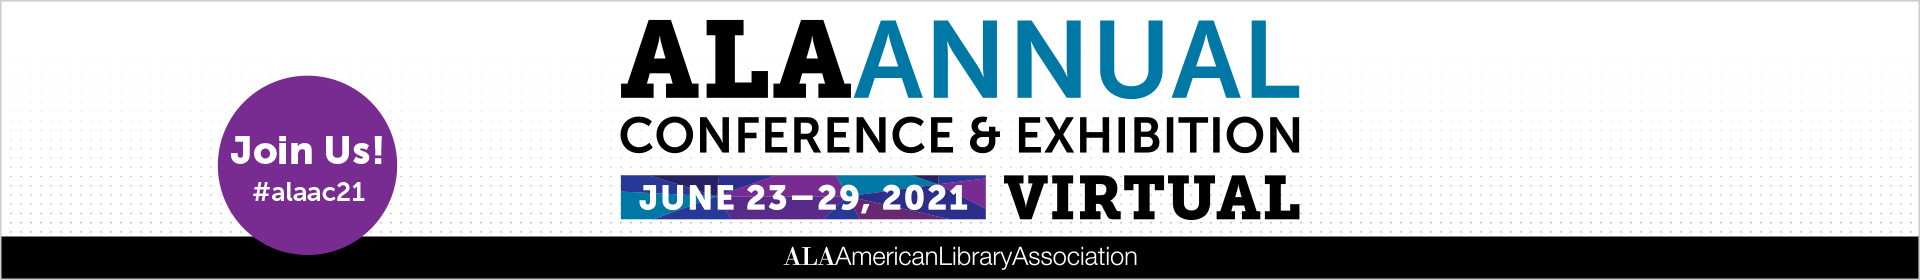 ALA Annual Conference & Exhibition | June 24-29, 2021 | Chicago | #alaac20